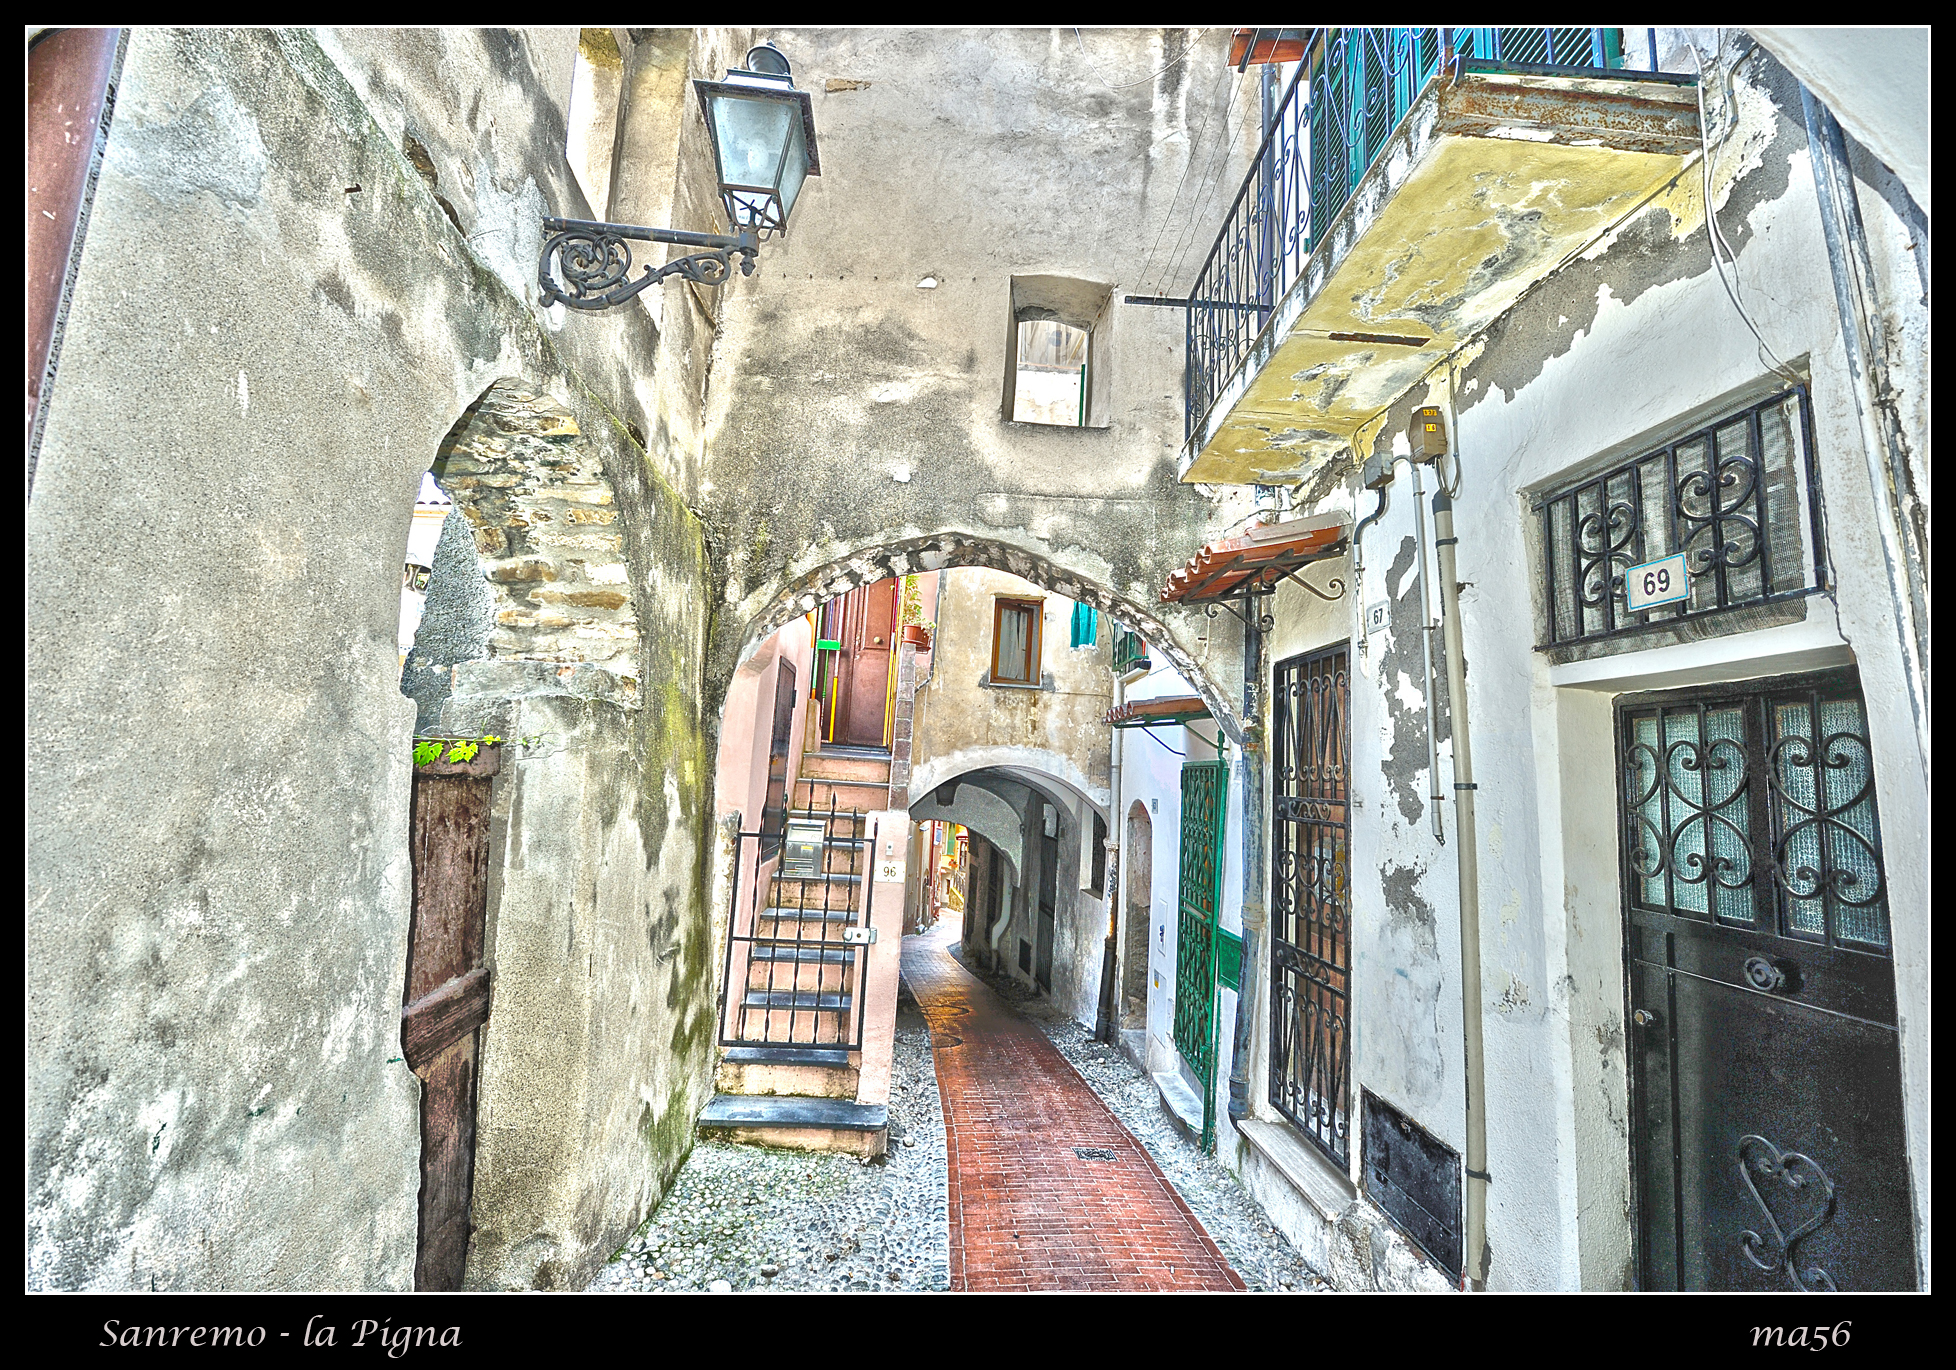 Sanremo - the Pigna (old town) HDR...